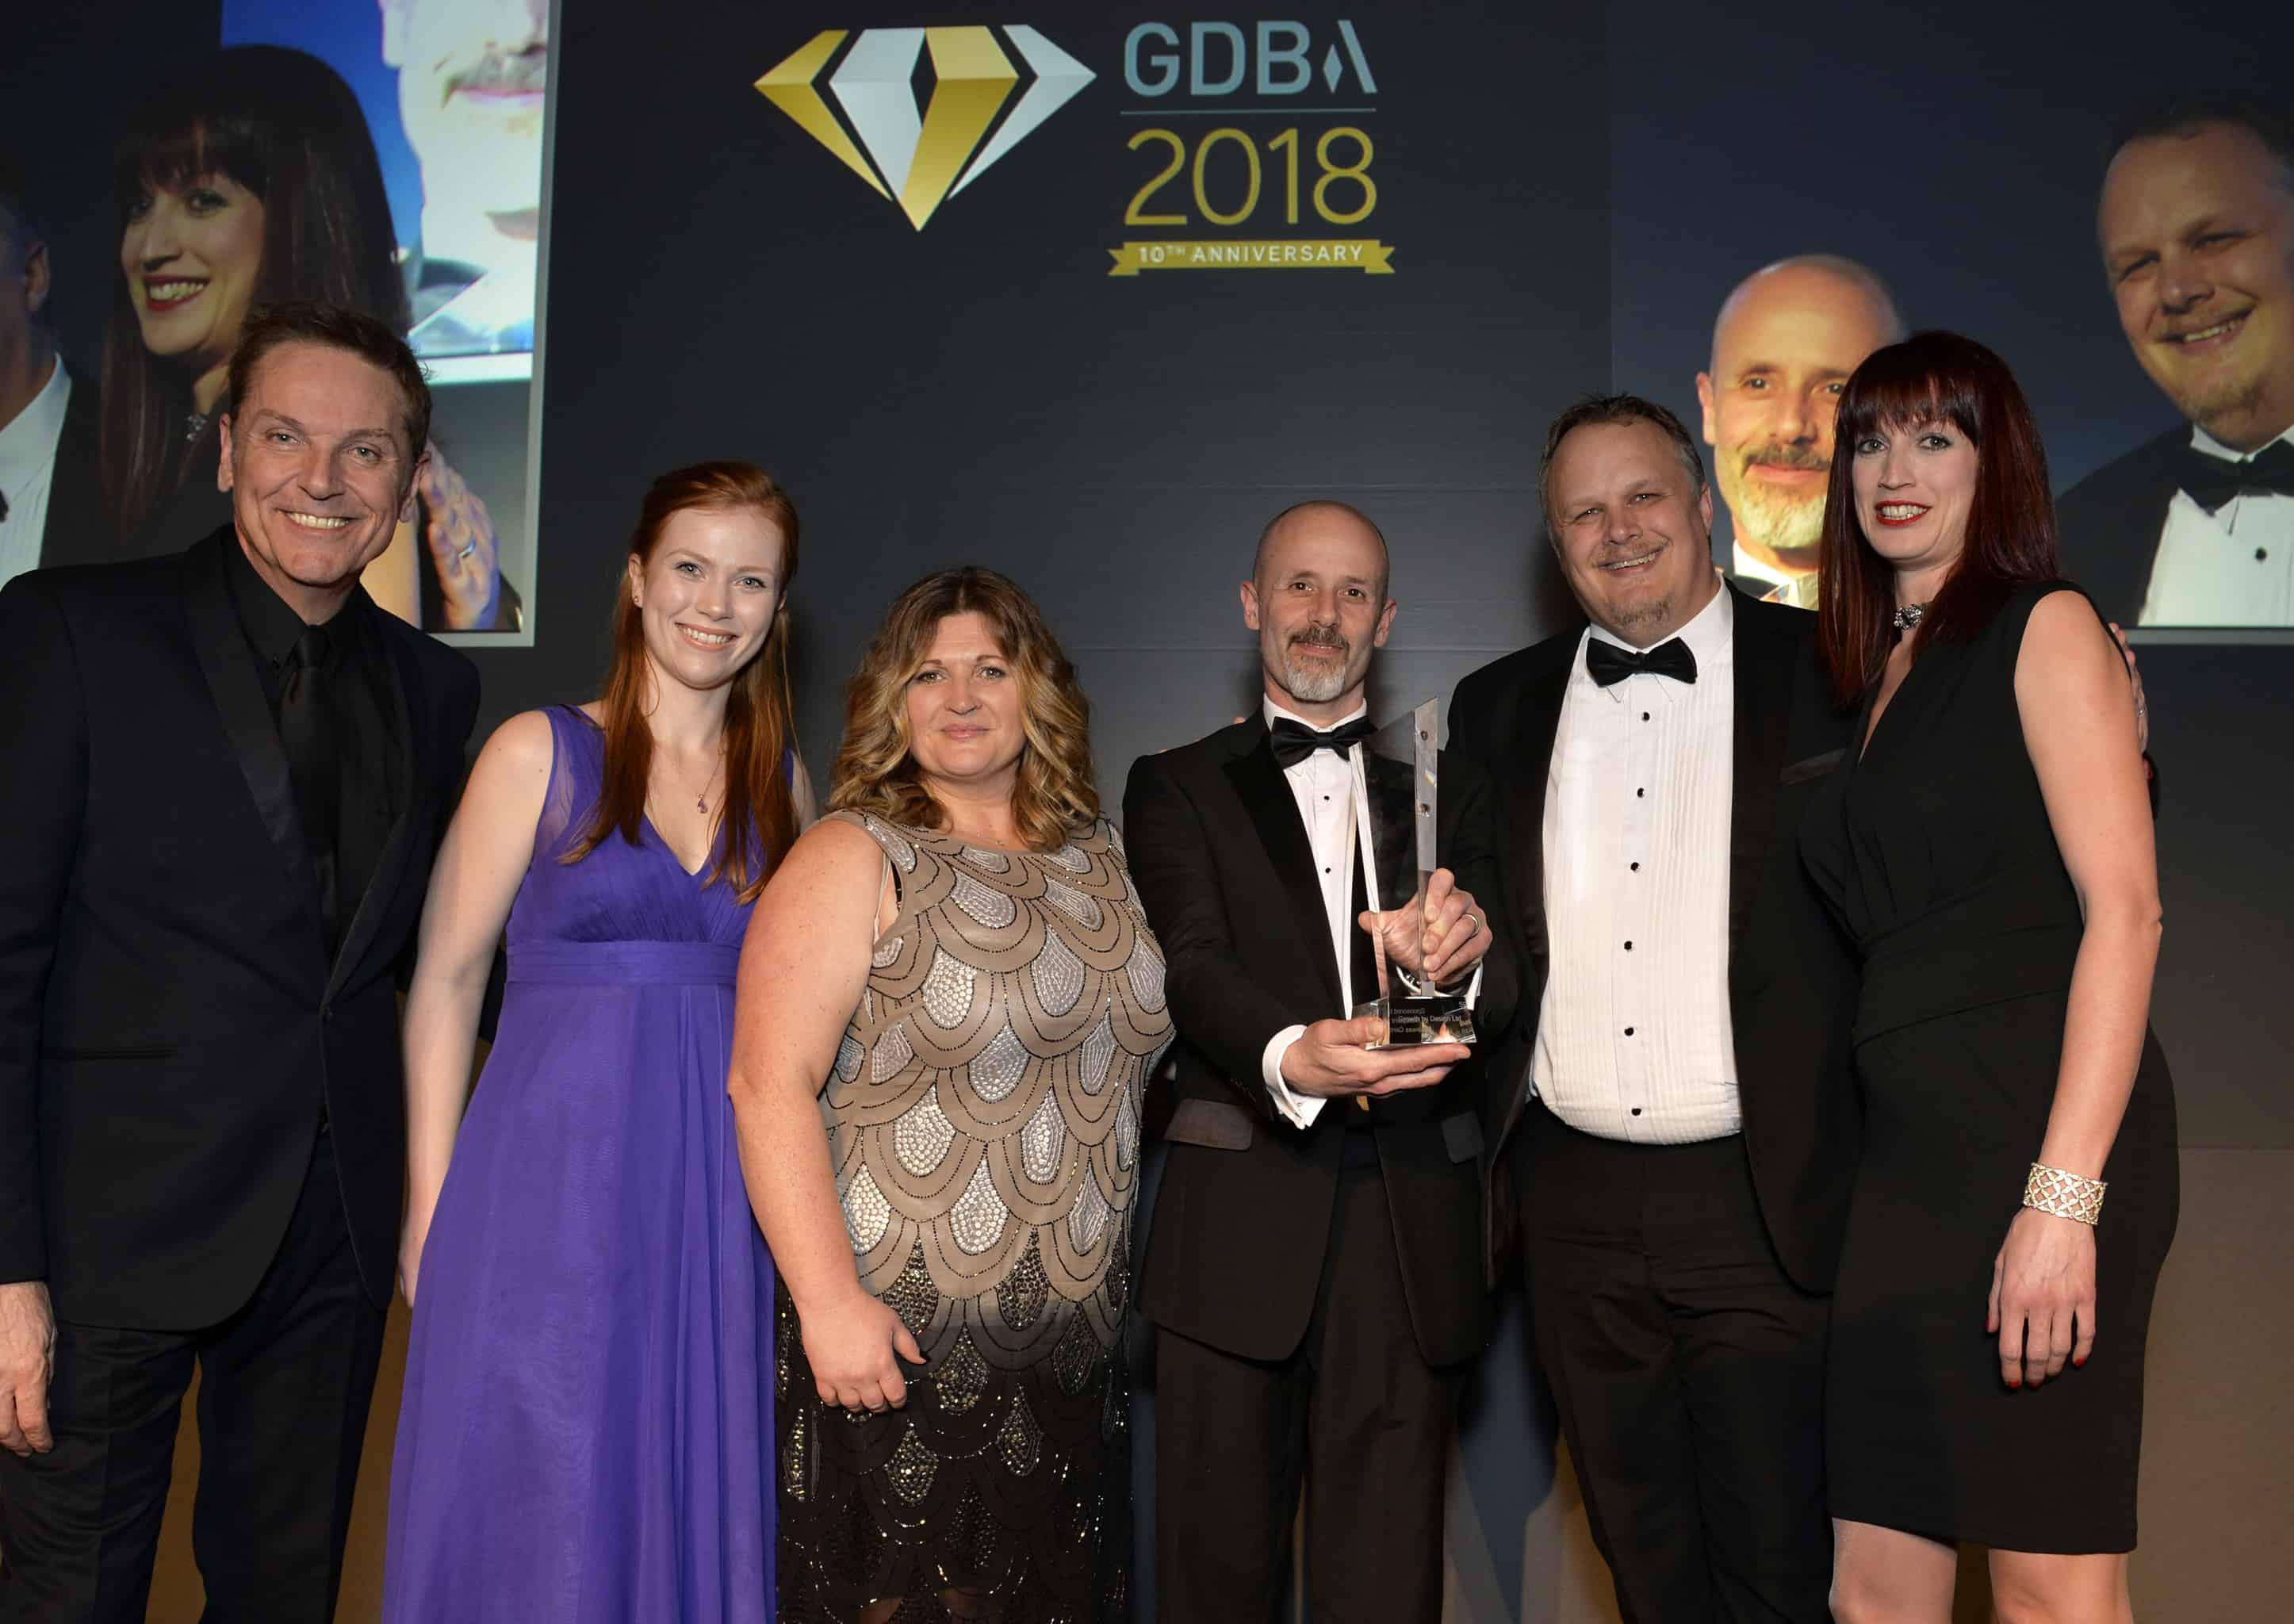 'Best New Business' in Sussex